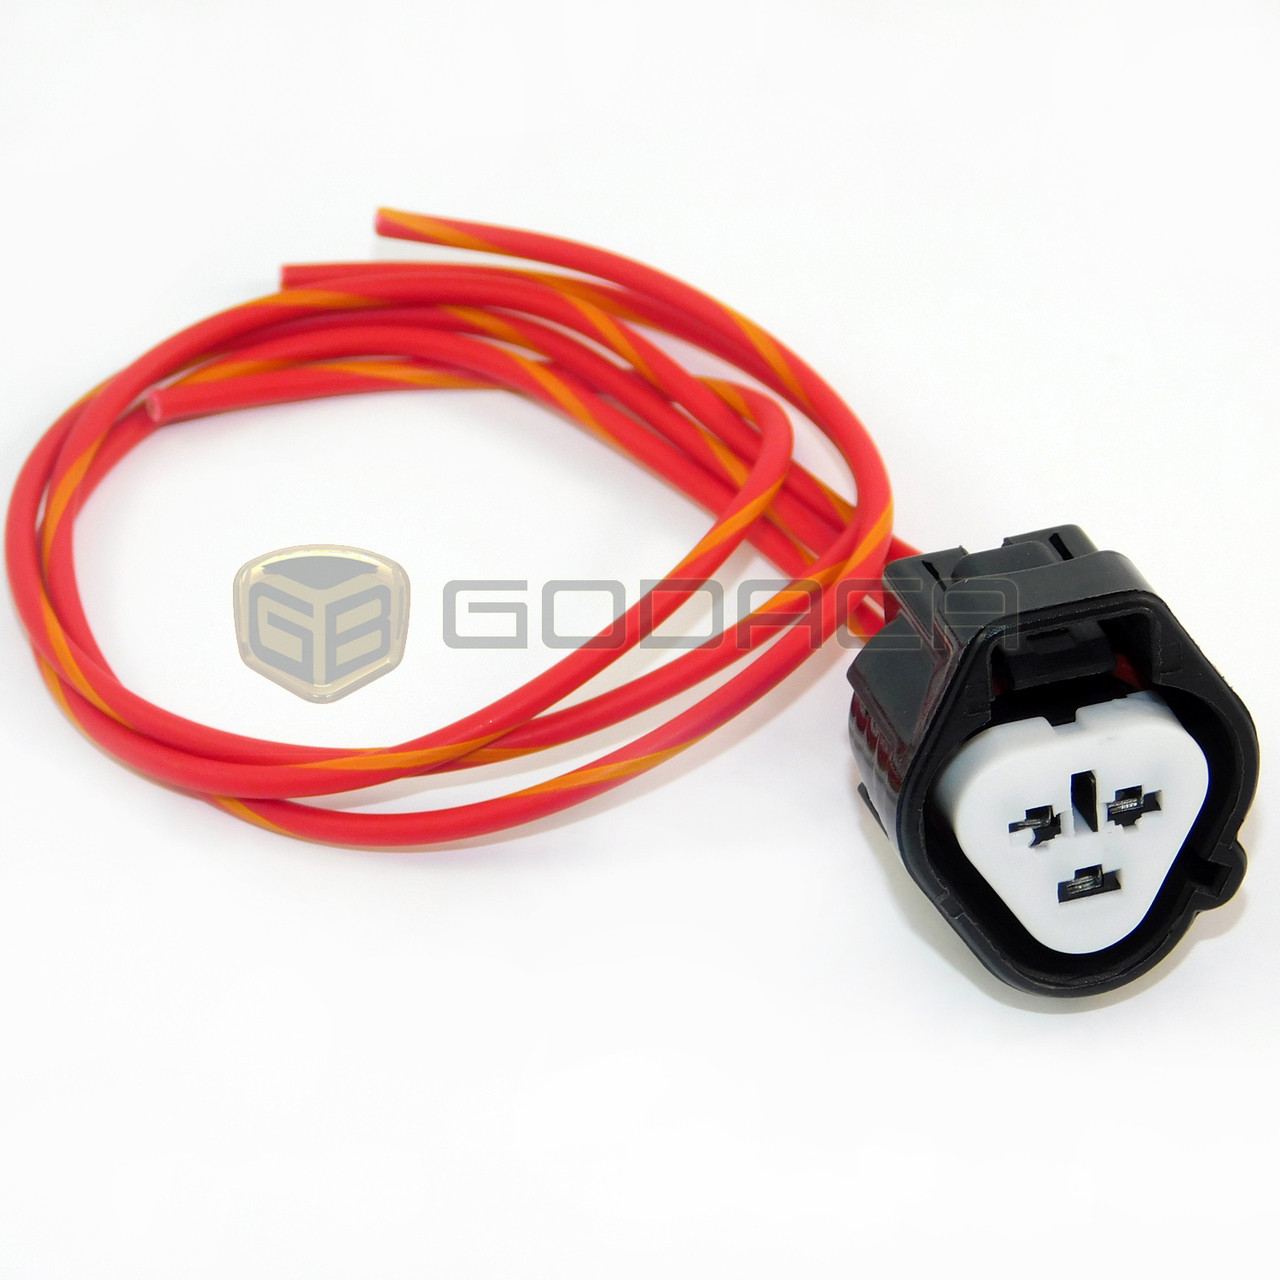 Toyota Wiring Harness Connector 11428 Diagram Database Pins 1x 3 Pin Way Repair Pigtail For 90980 11016 Adapter